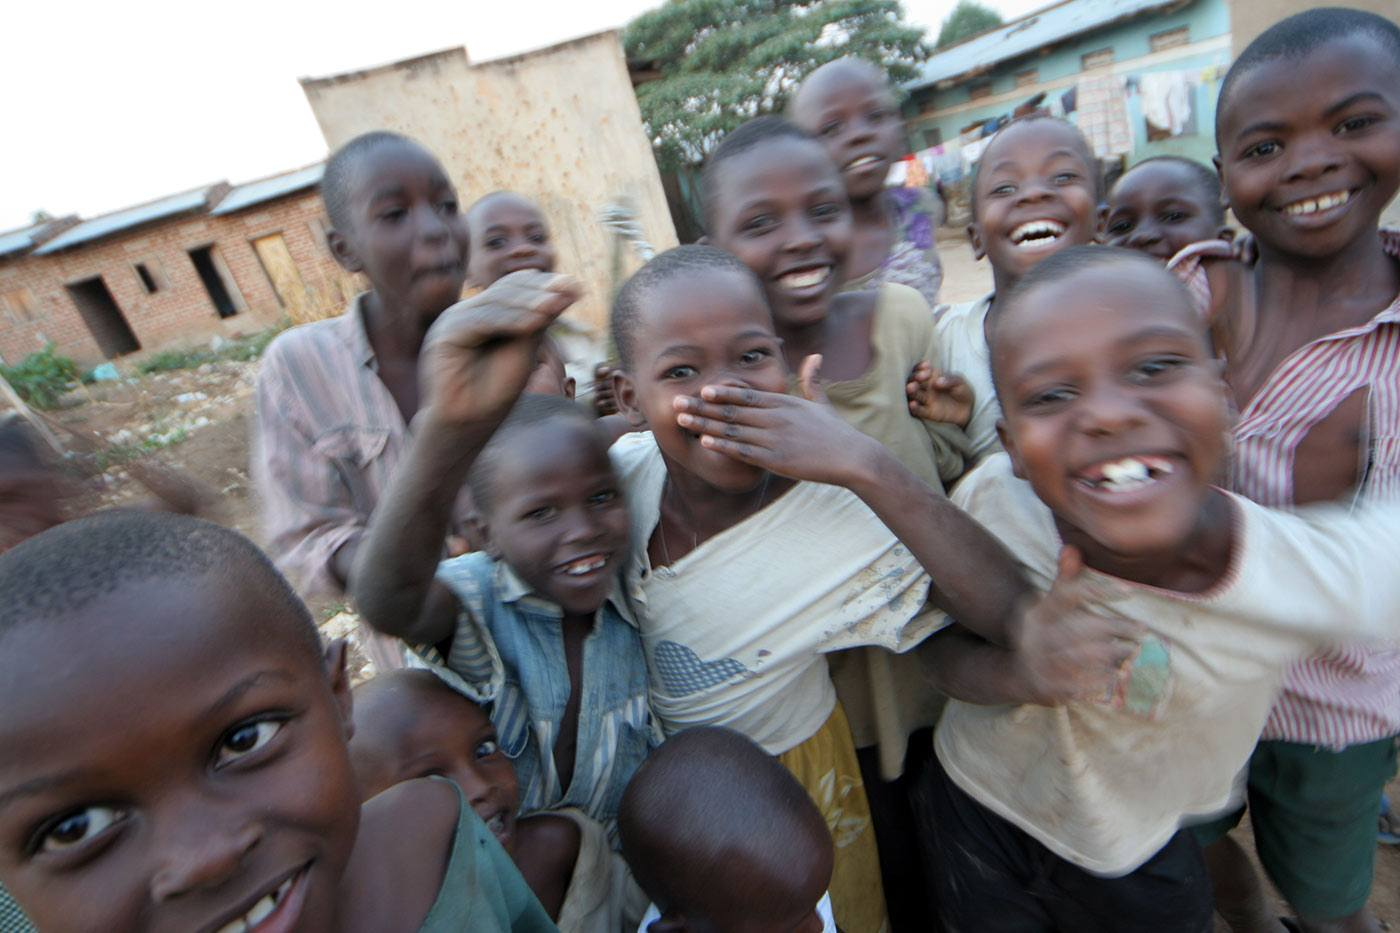 a group of smiling children in a developing country